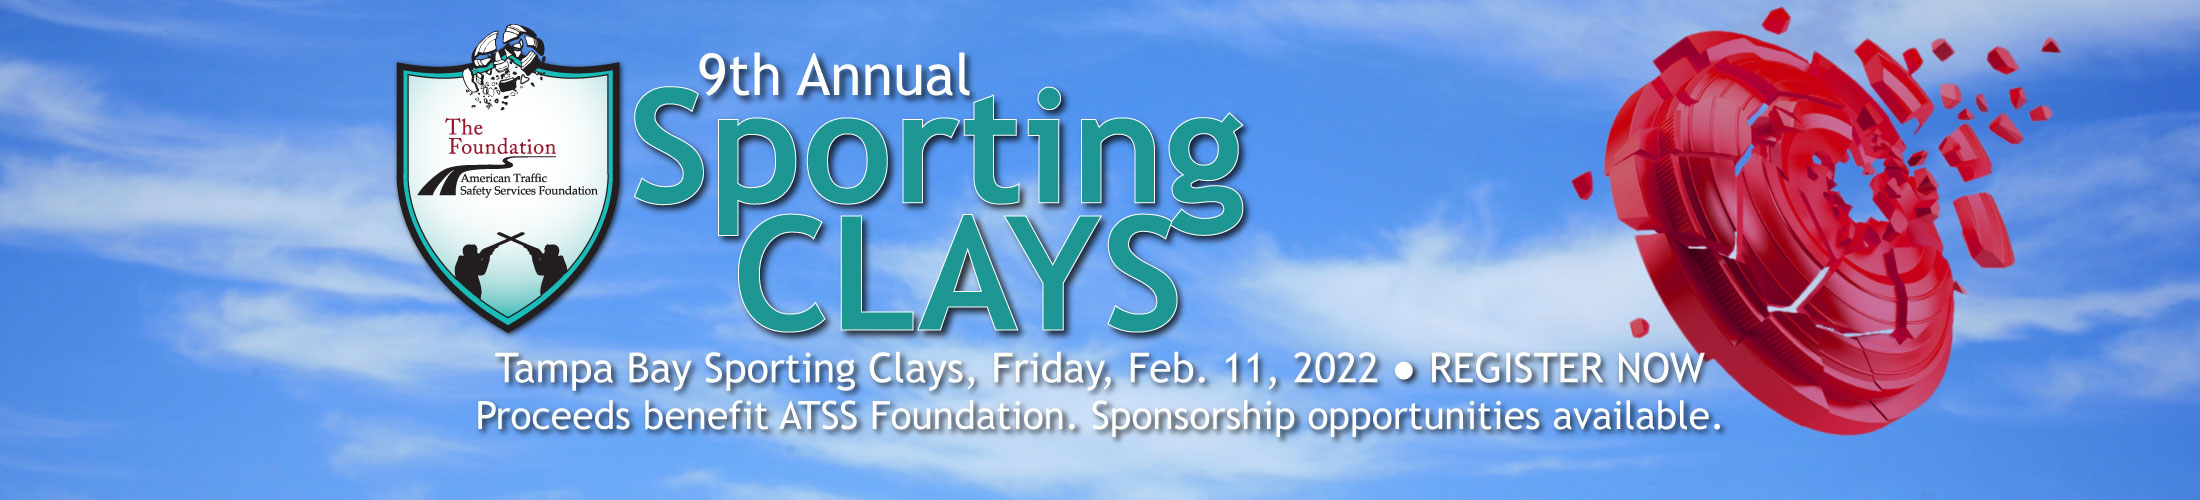 9th Annual Sporting Clays Event registration is now open